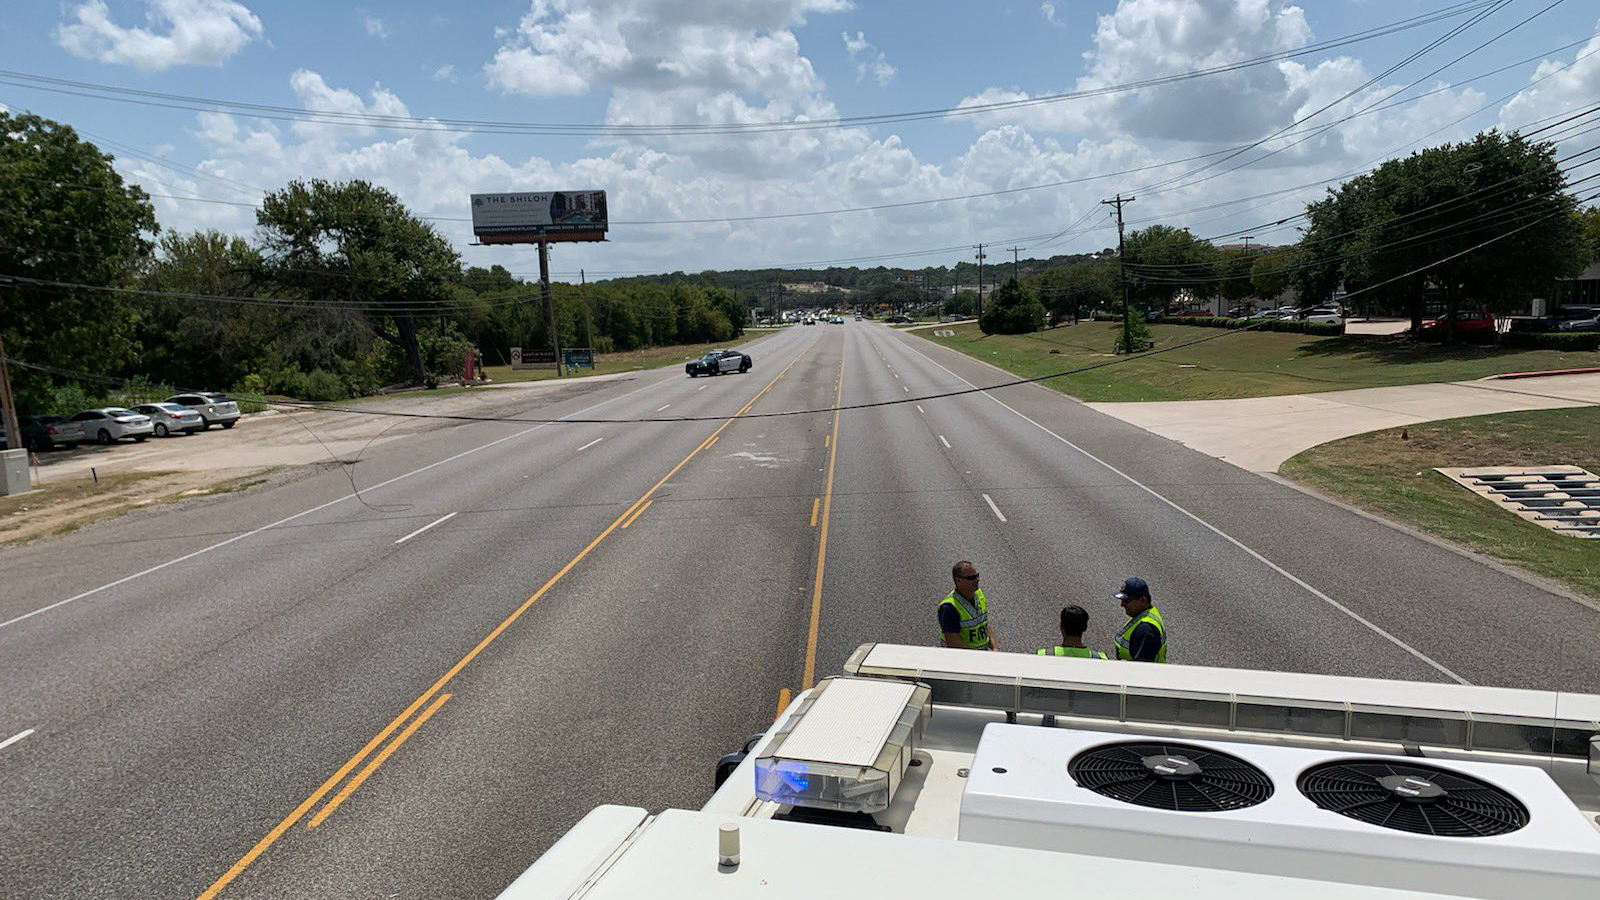 SH 71 near Oak Hill is closed in both directions due to low hanging power lines. Avoid the area while crews fix them, Austin Fire said. (AFD photo)